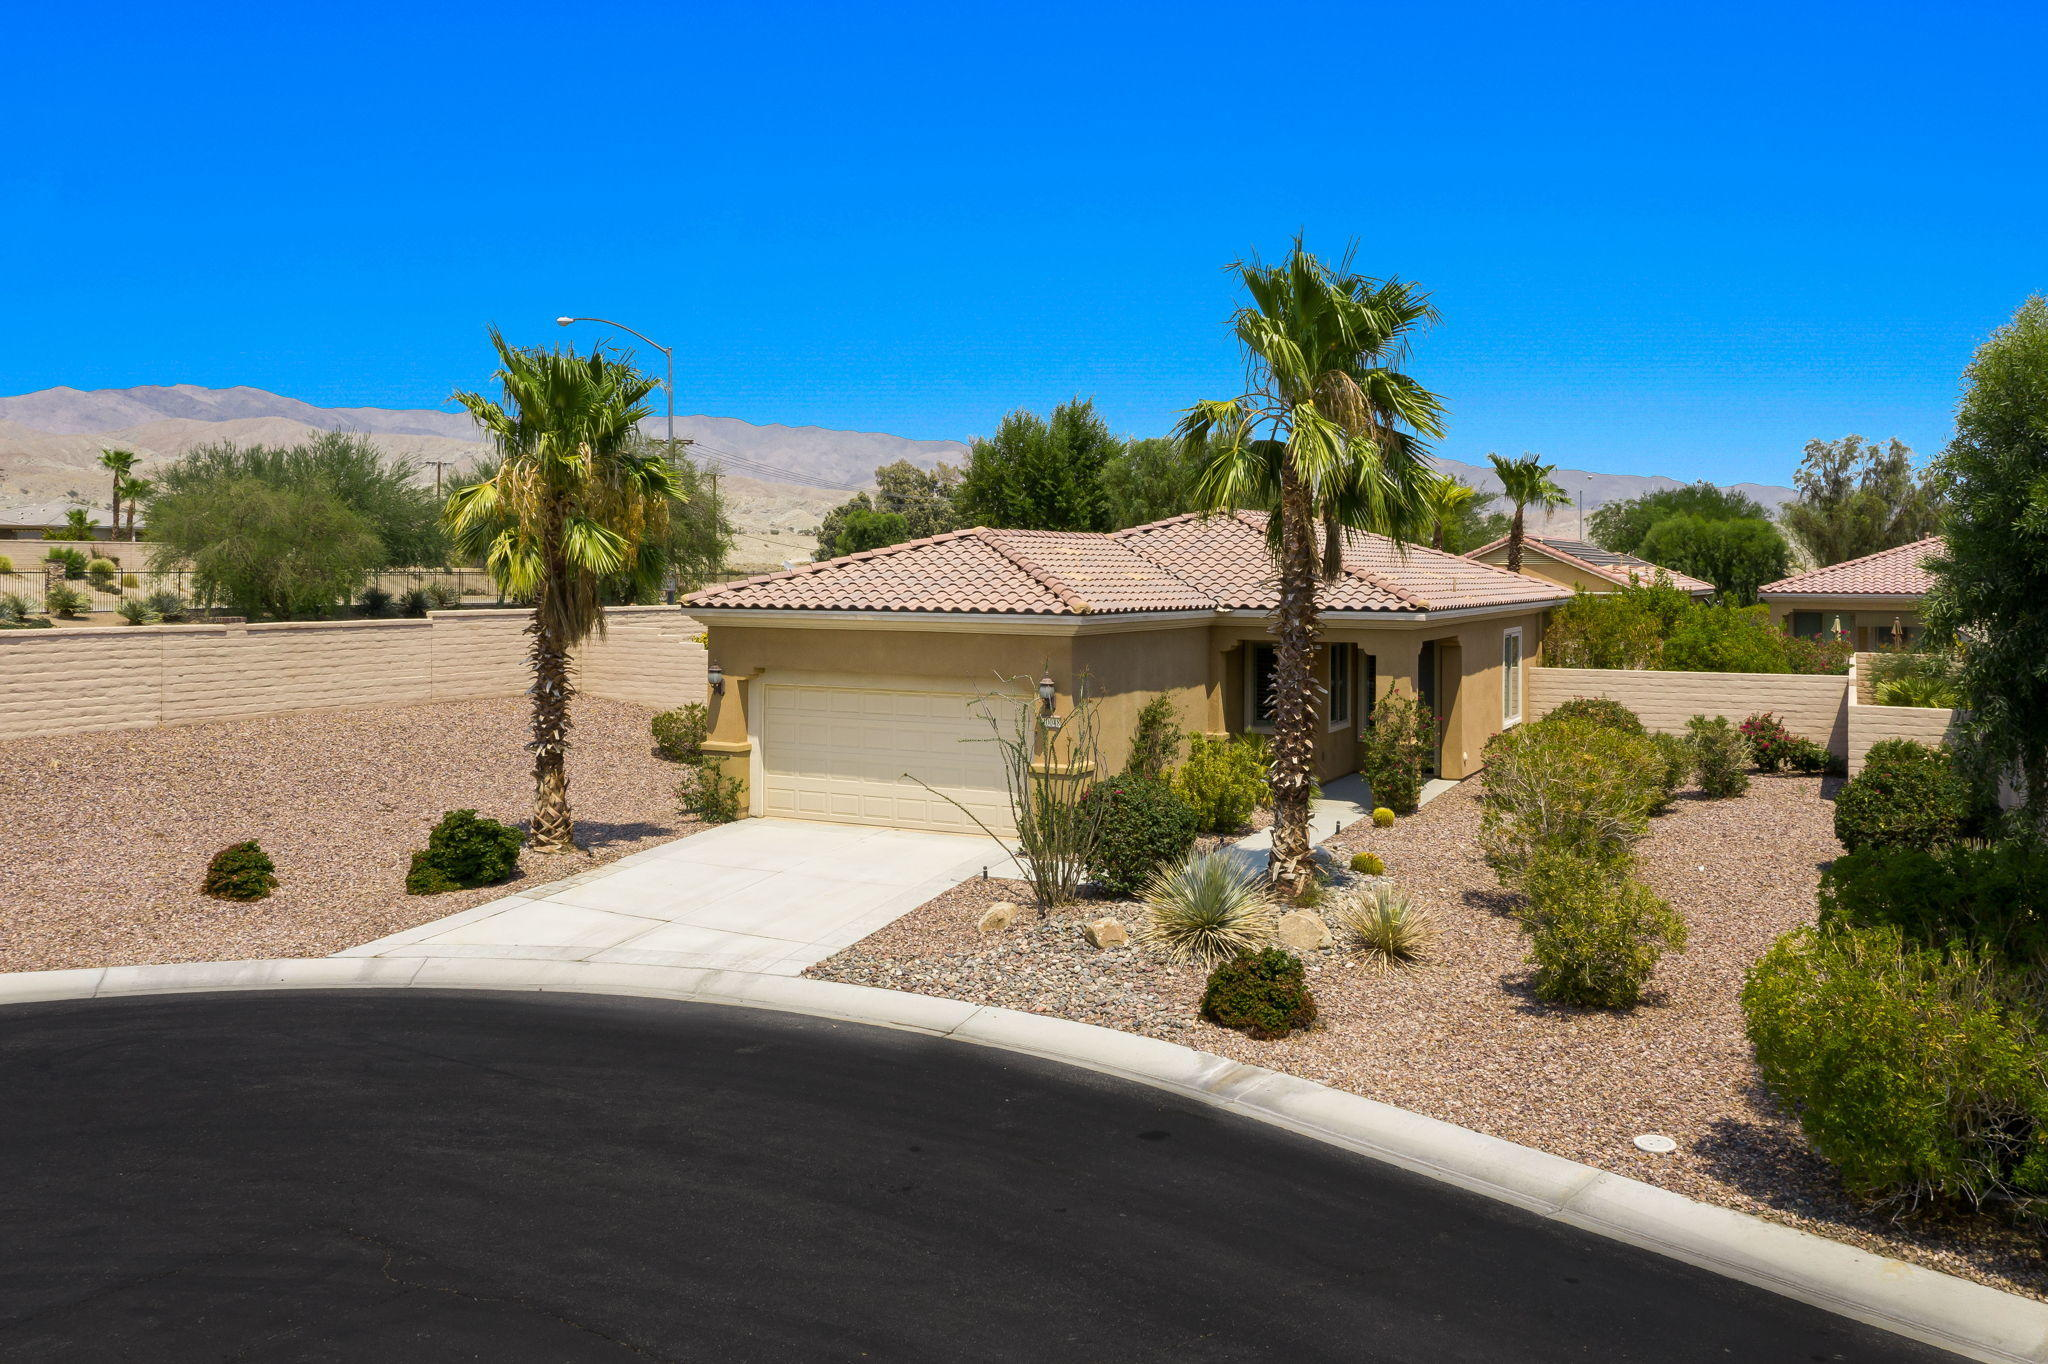 Photo of 40048 Corte Refugio, Indio, CA 92203